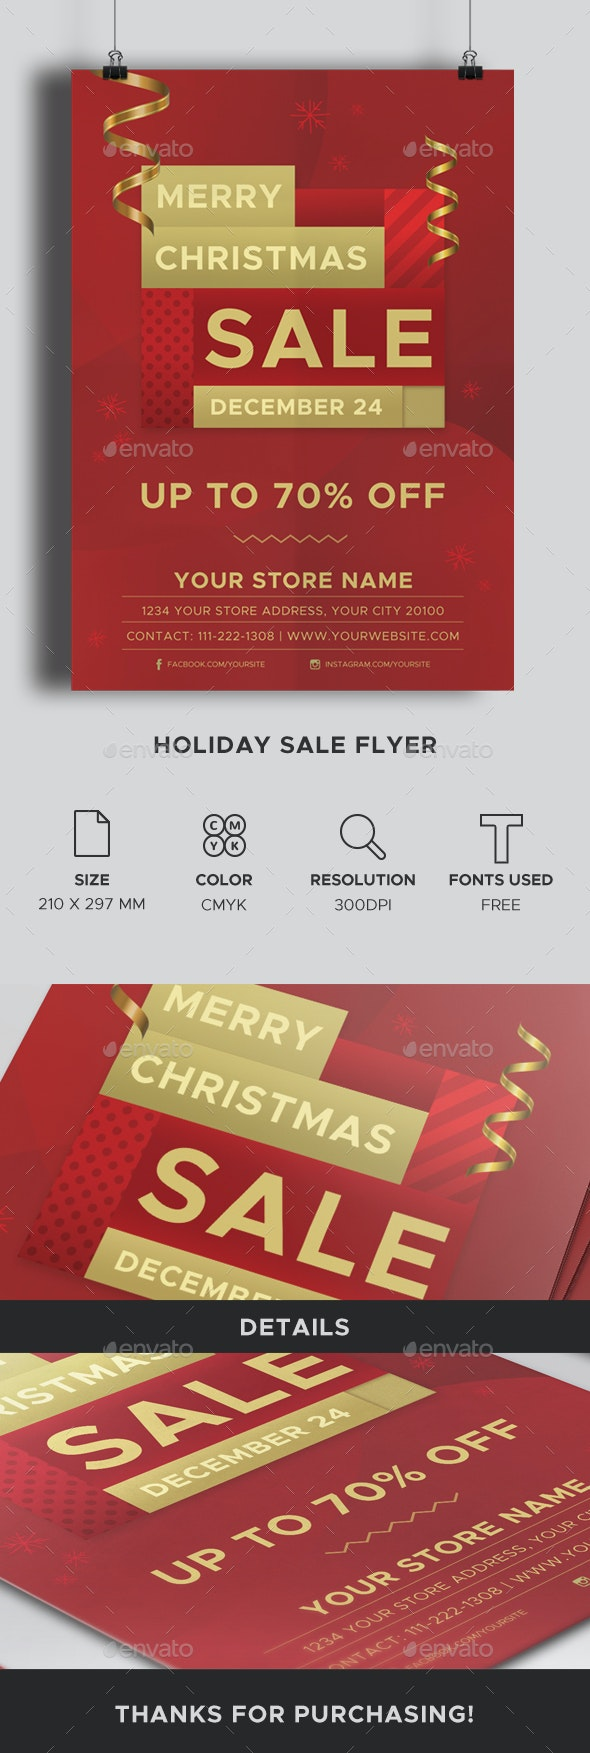 Holiday Sale Flyer - Holidays Events